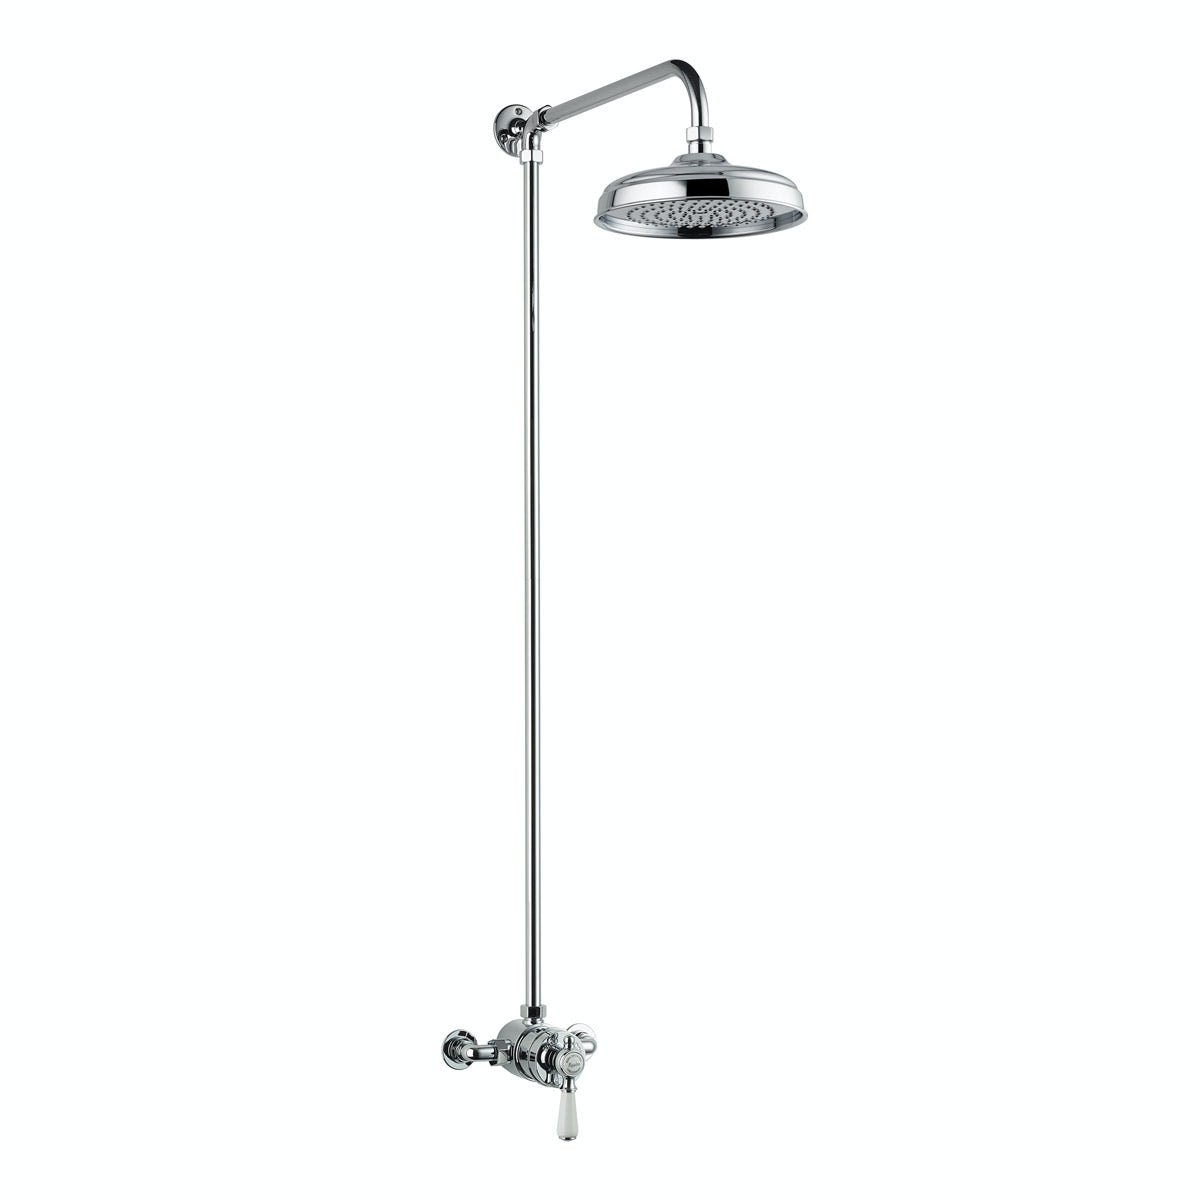 Mira Realm ER thermostatic mixer shower